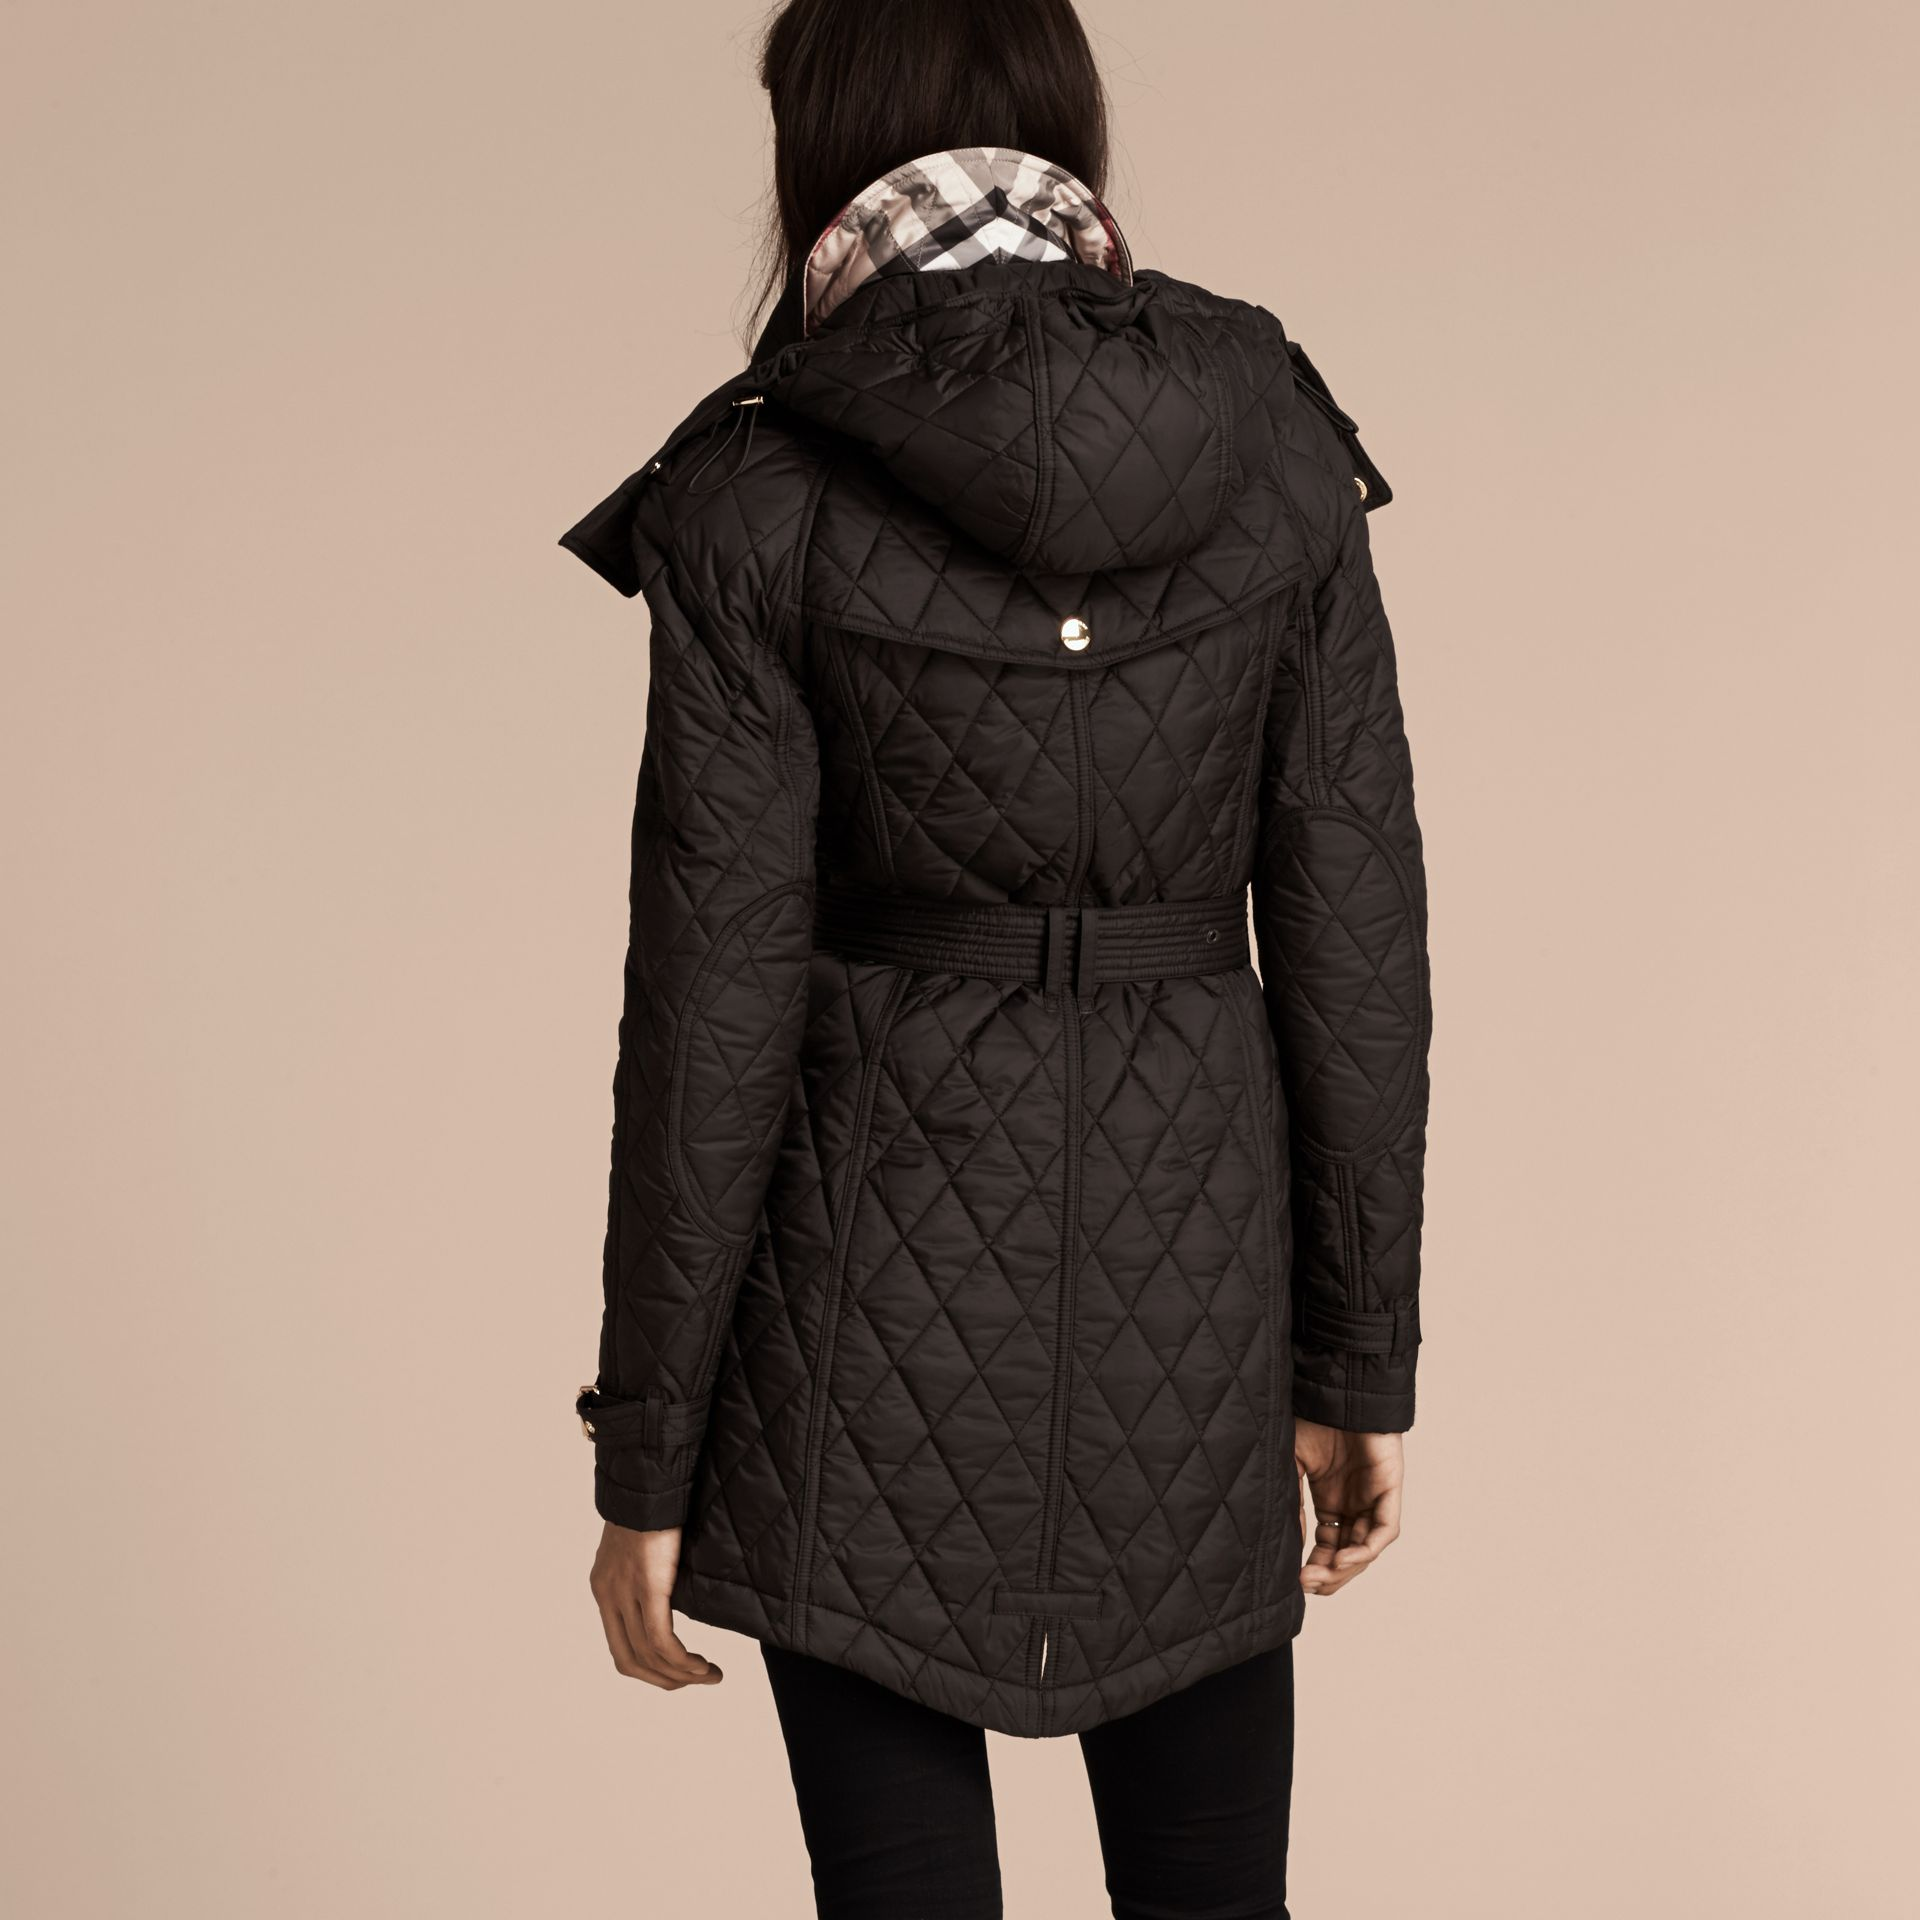 Black Diamond Quilted Showerproof Parka - gallery image 2